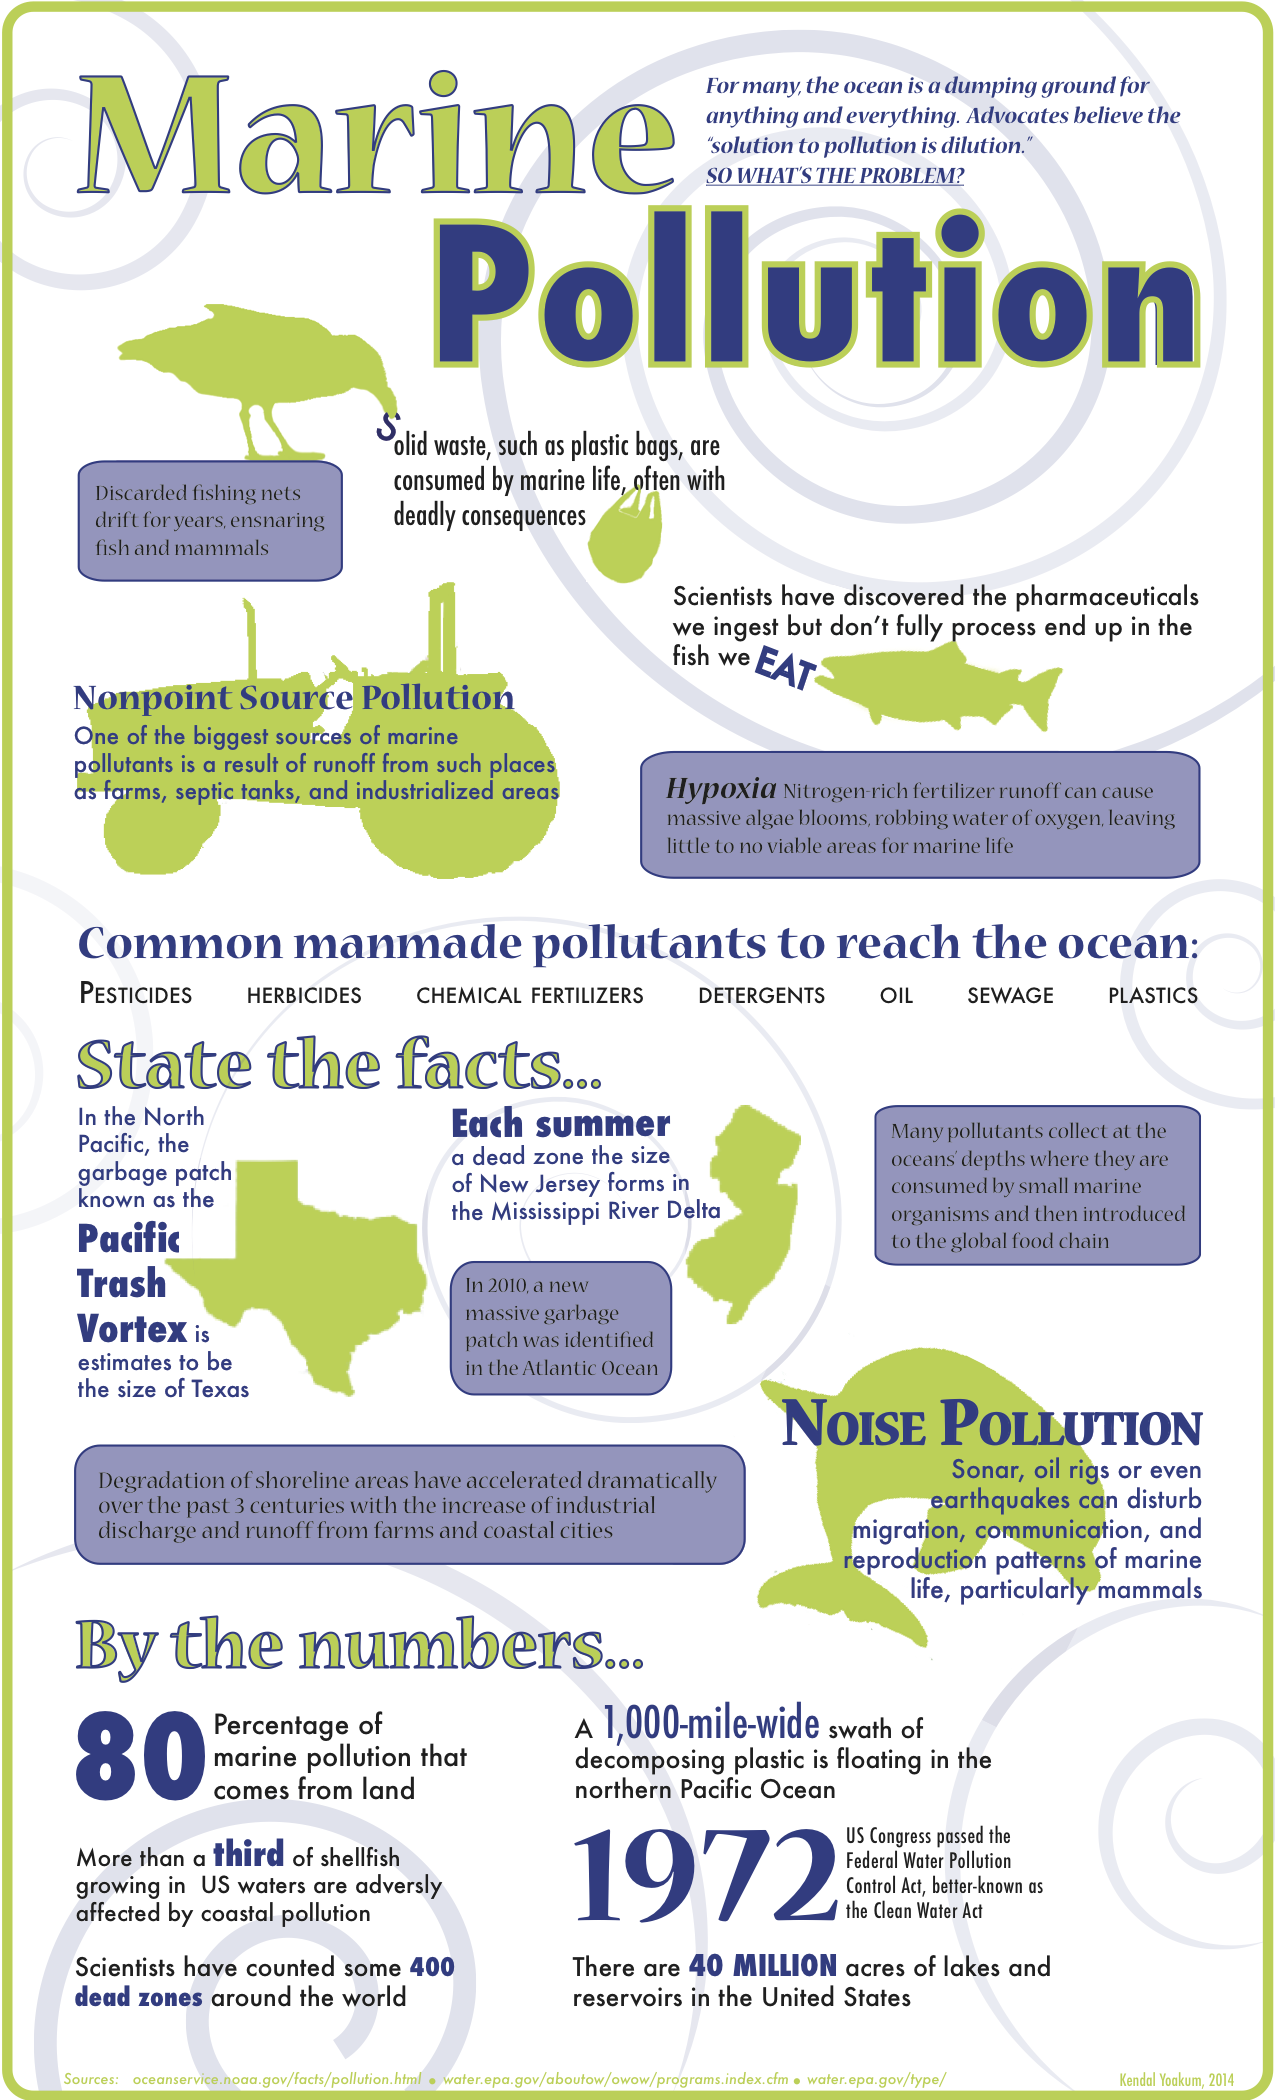 marine pollution The 1995 state of the marine environment report found that pollution from the land contributes up to 80 percent of all marine pollution and is a major threat to the long-term health of nearshore marine systems.